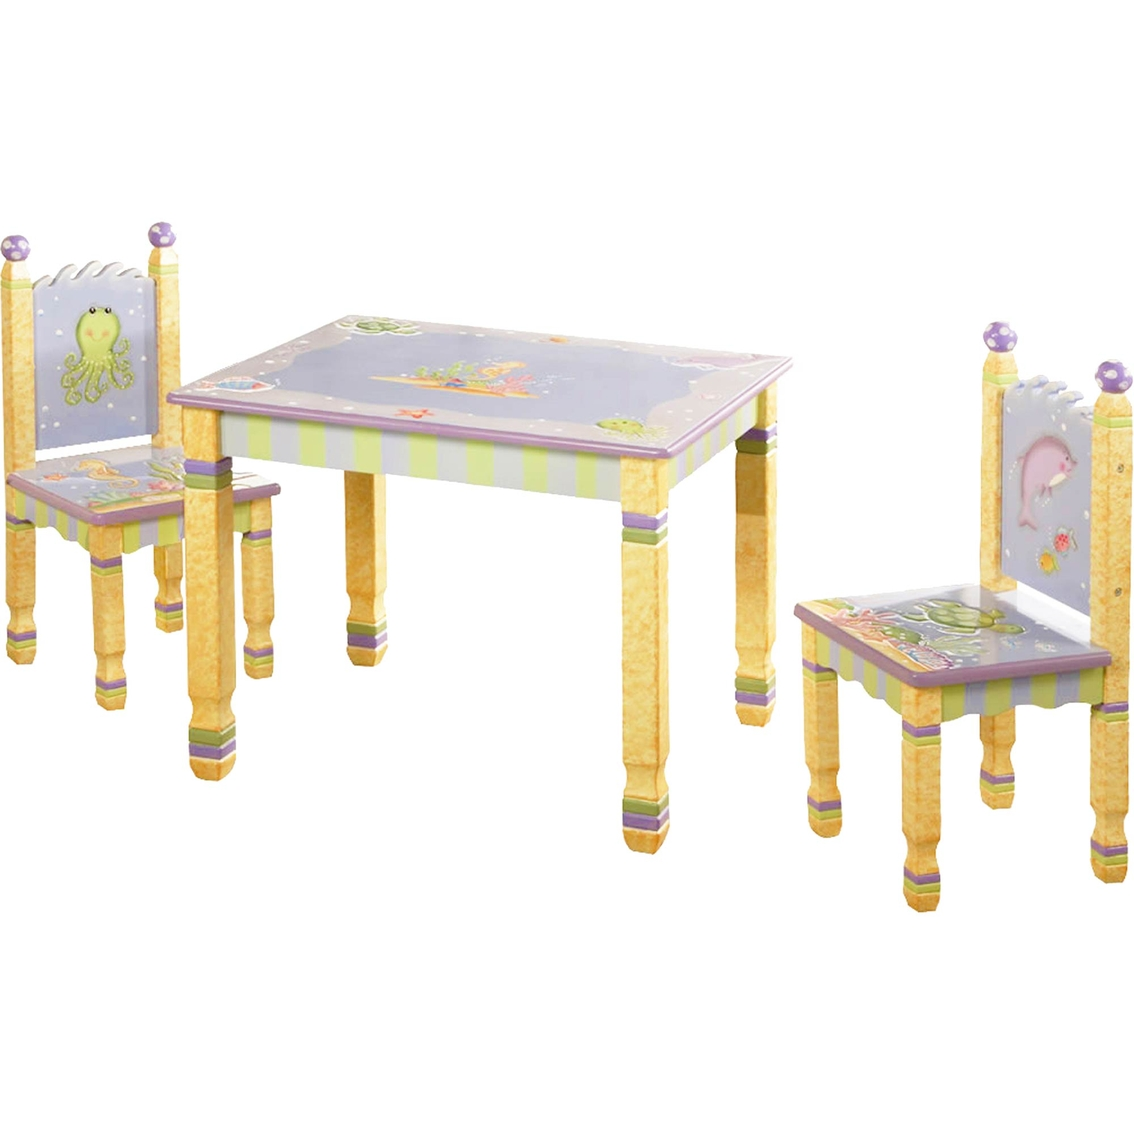 Fantasy Fields Under The Sea Table And Chairs 3 Pc. Set